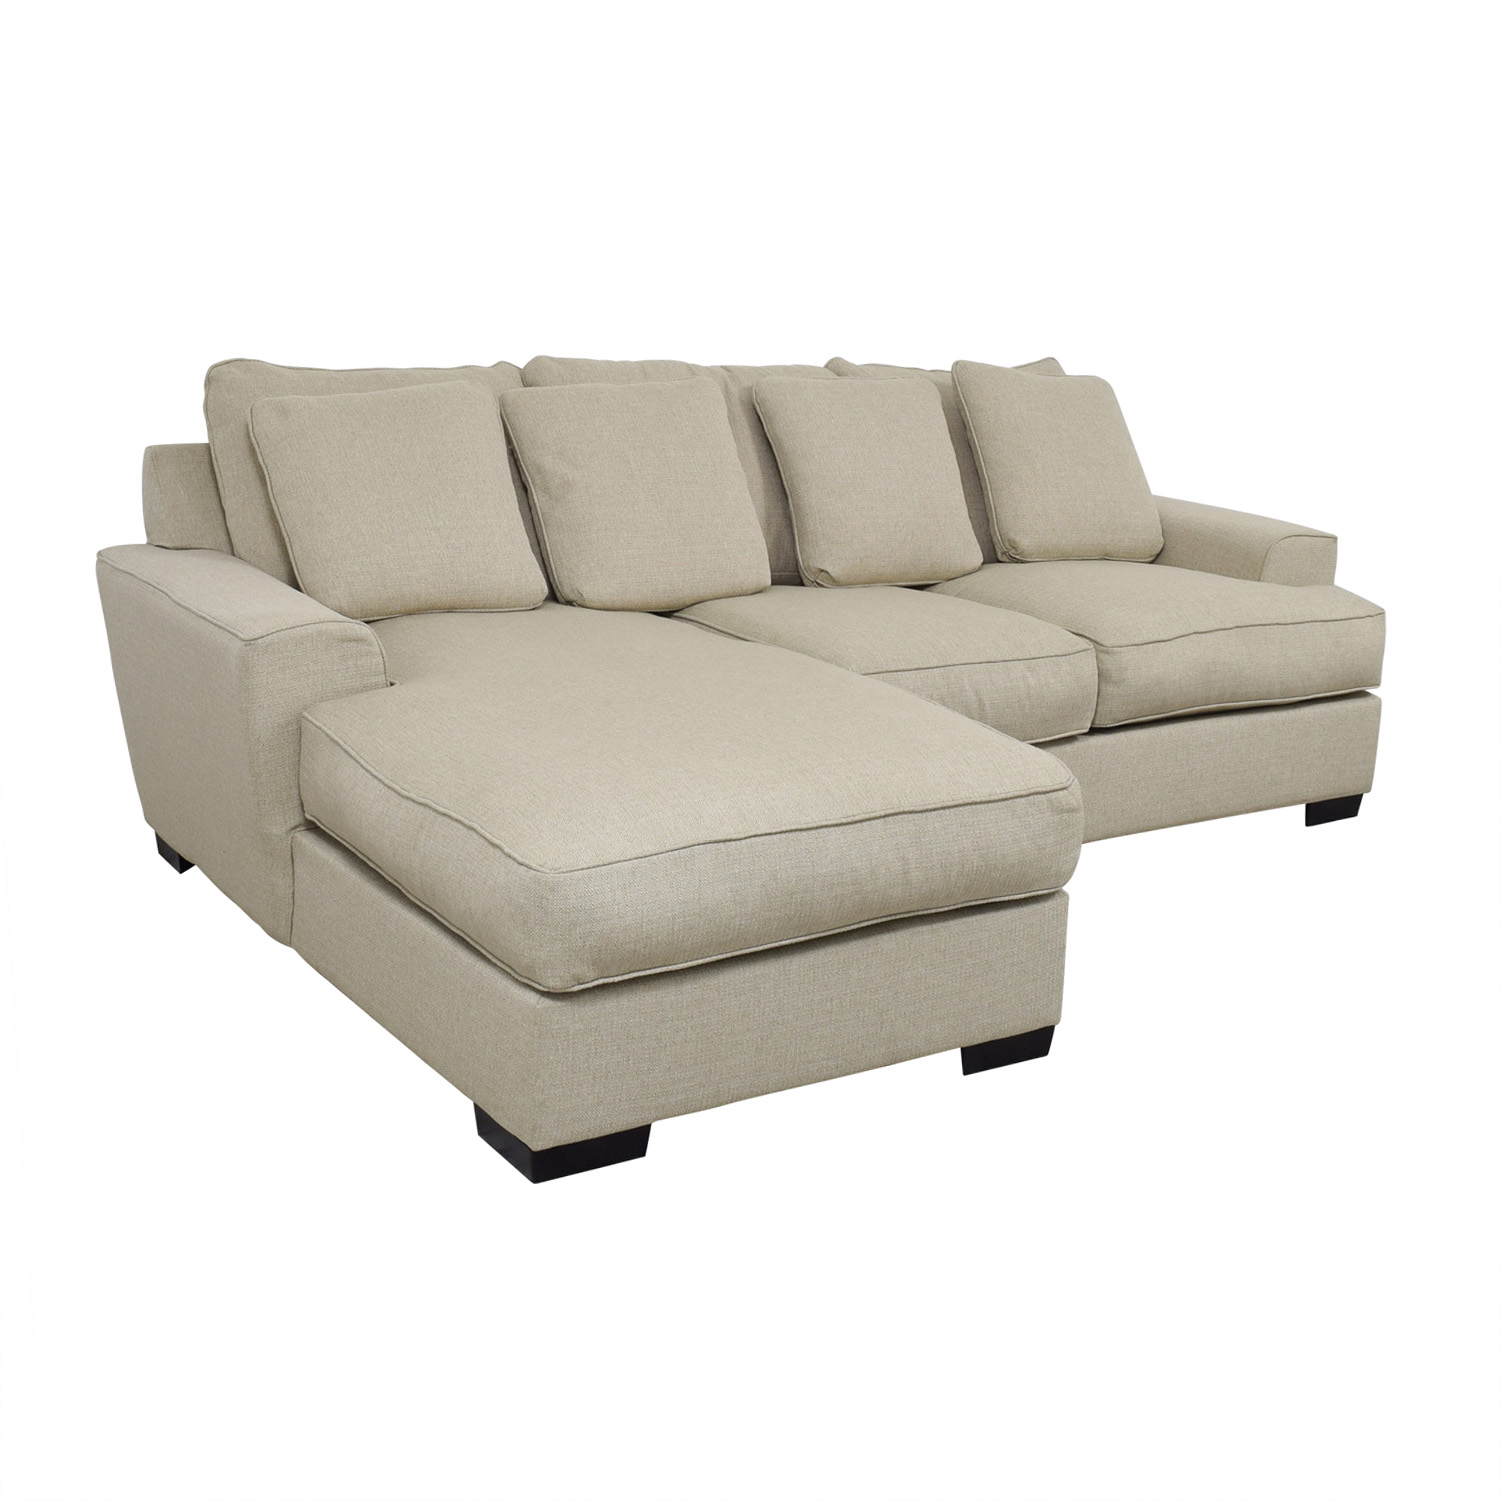 48 Off Macy S Macy S Ainsley Beige Chaise Sectional Sofas